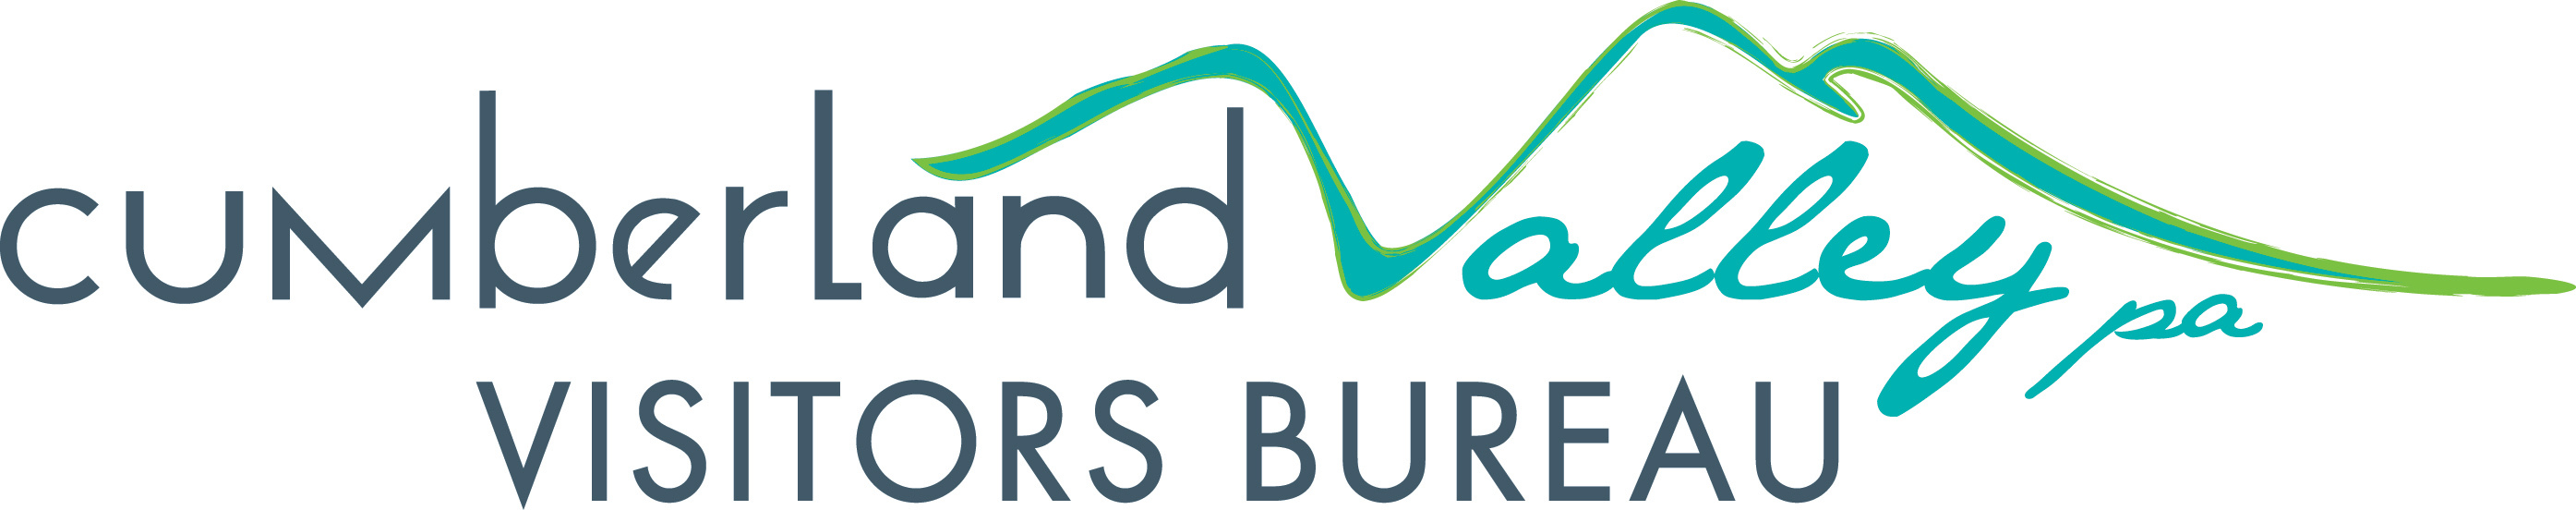 Cumberland Valley Visitor's Bureau